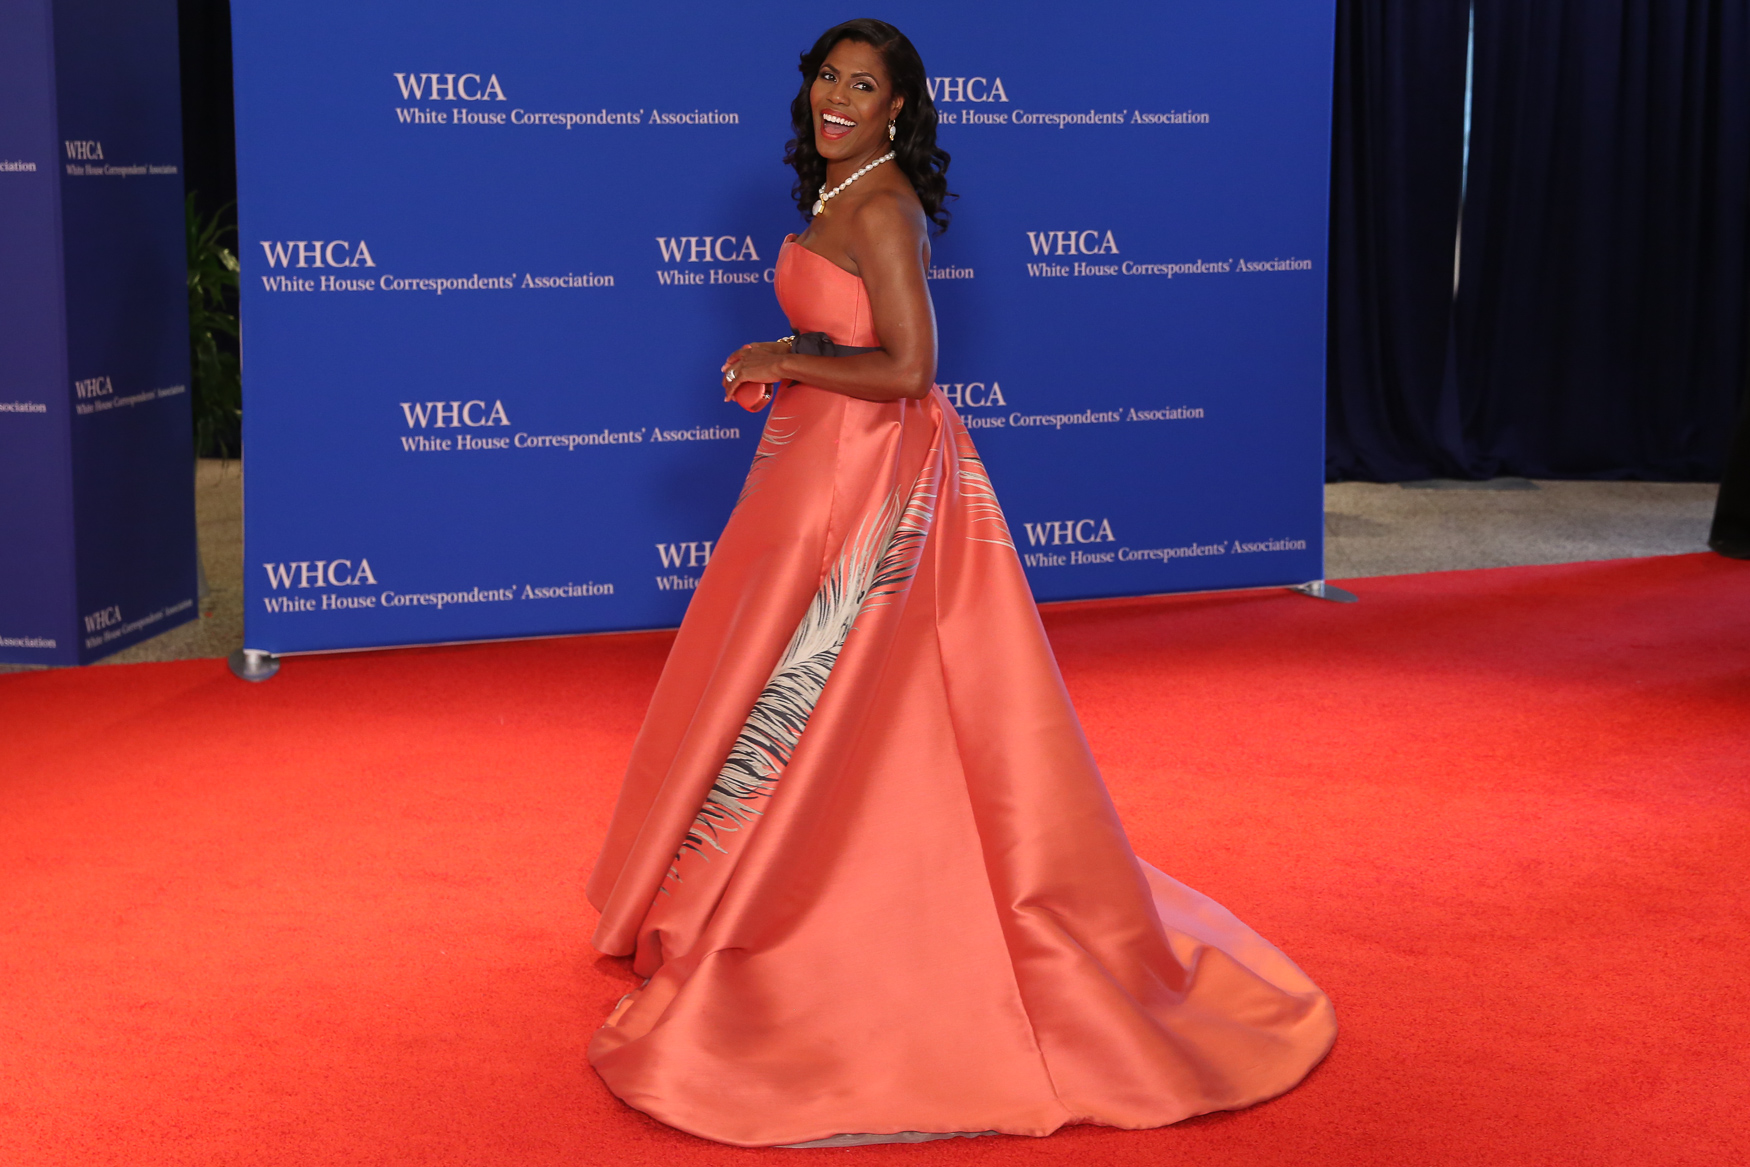 Omarosa may have been out of the White House before this dinner, but she came to the dinner dressed with a vengeance. That color is perfect on her skin and the silhouette is as dramatic as she was on The Apprentice. (Image: Amanda Andrade-Rhoades/ DC Refined)